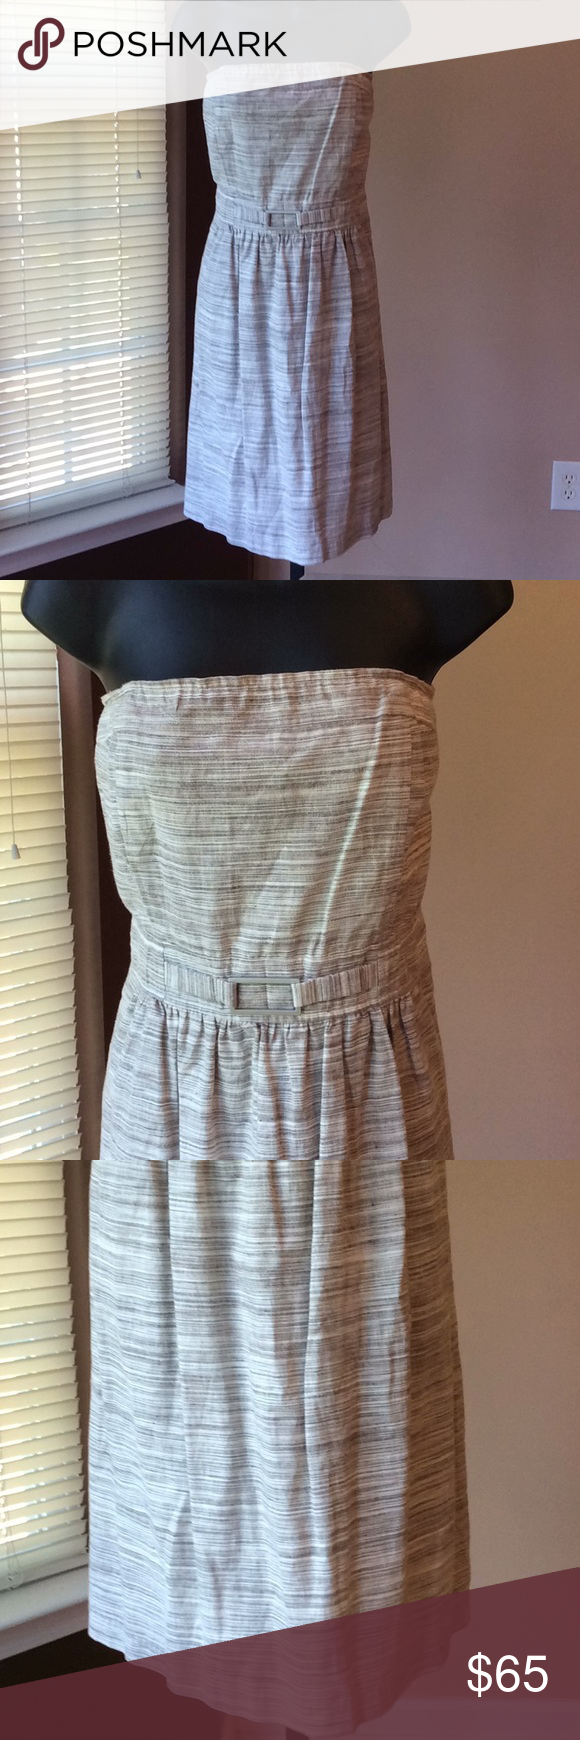 7aafff2df82 BANANA REPUBLIC STRAPLESS SUNDRESS Taupe